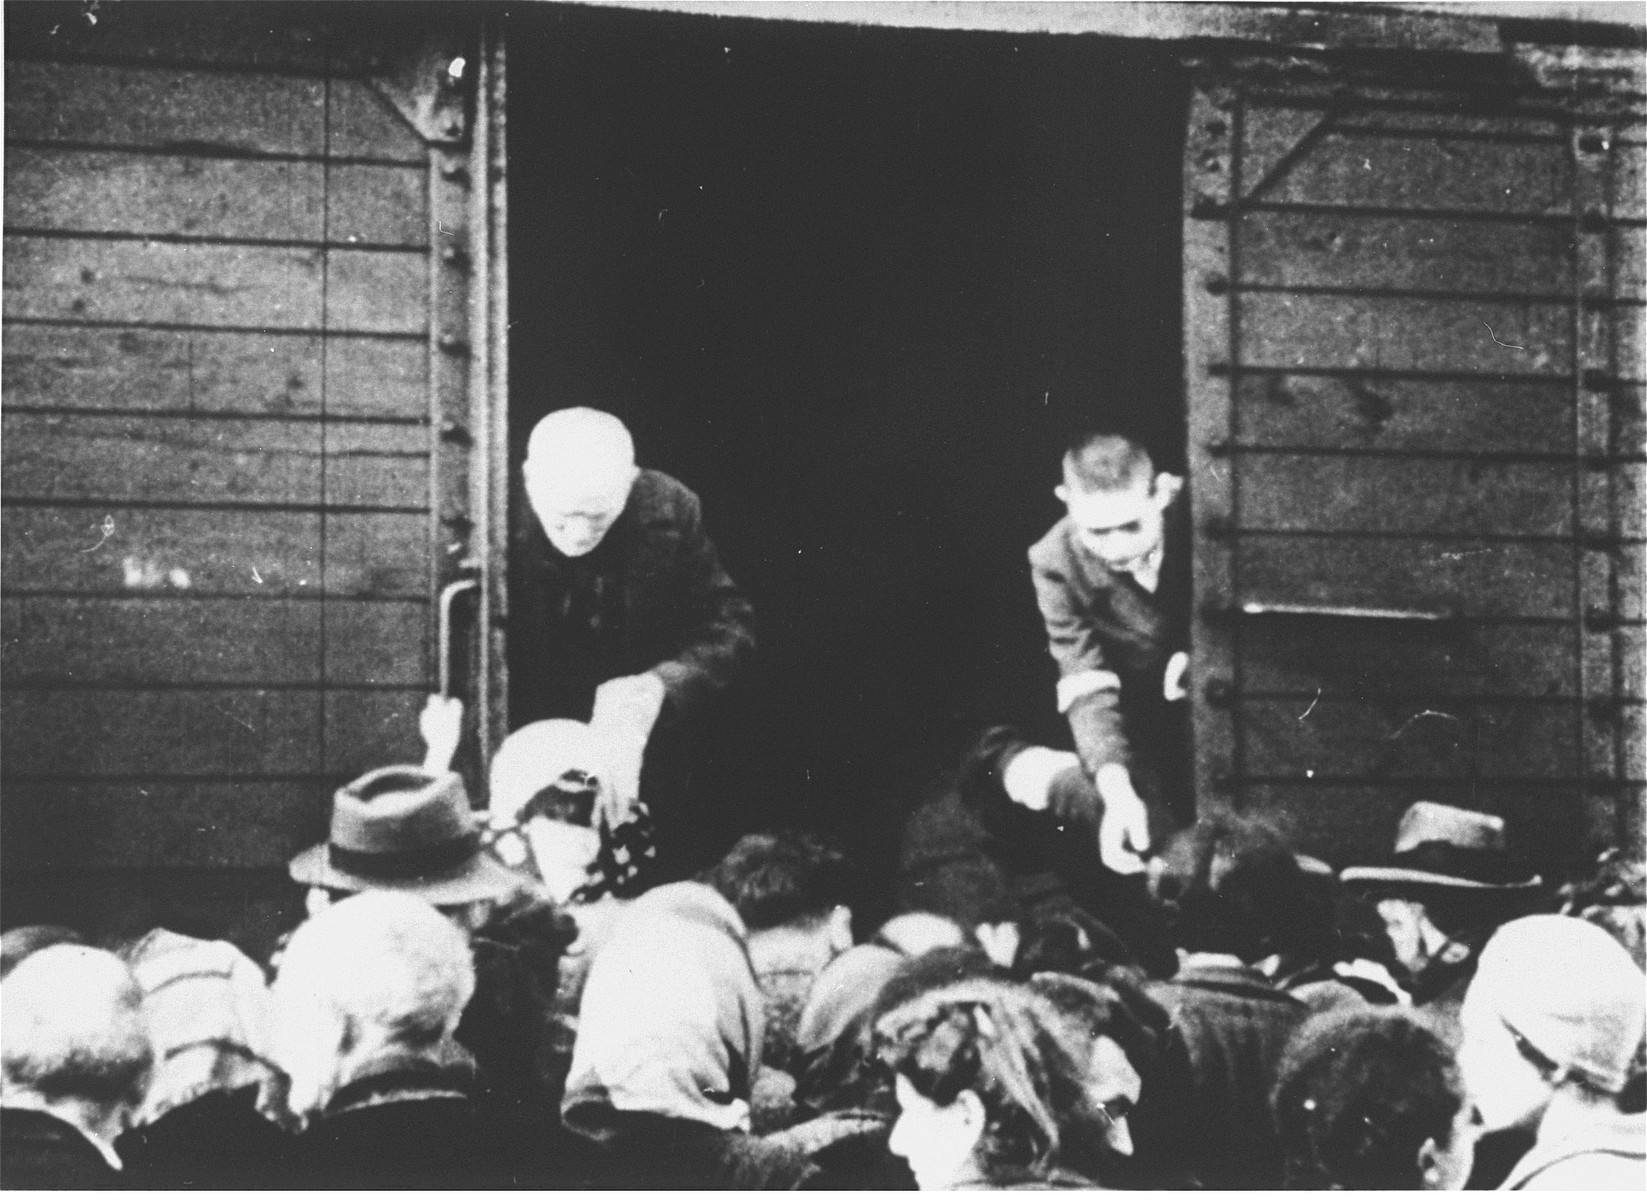 The deportation of Jews from Westerbork.